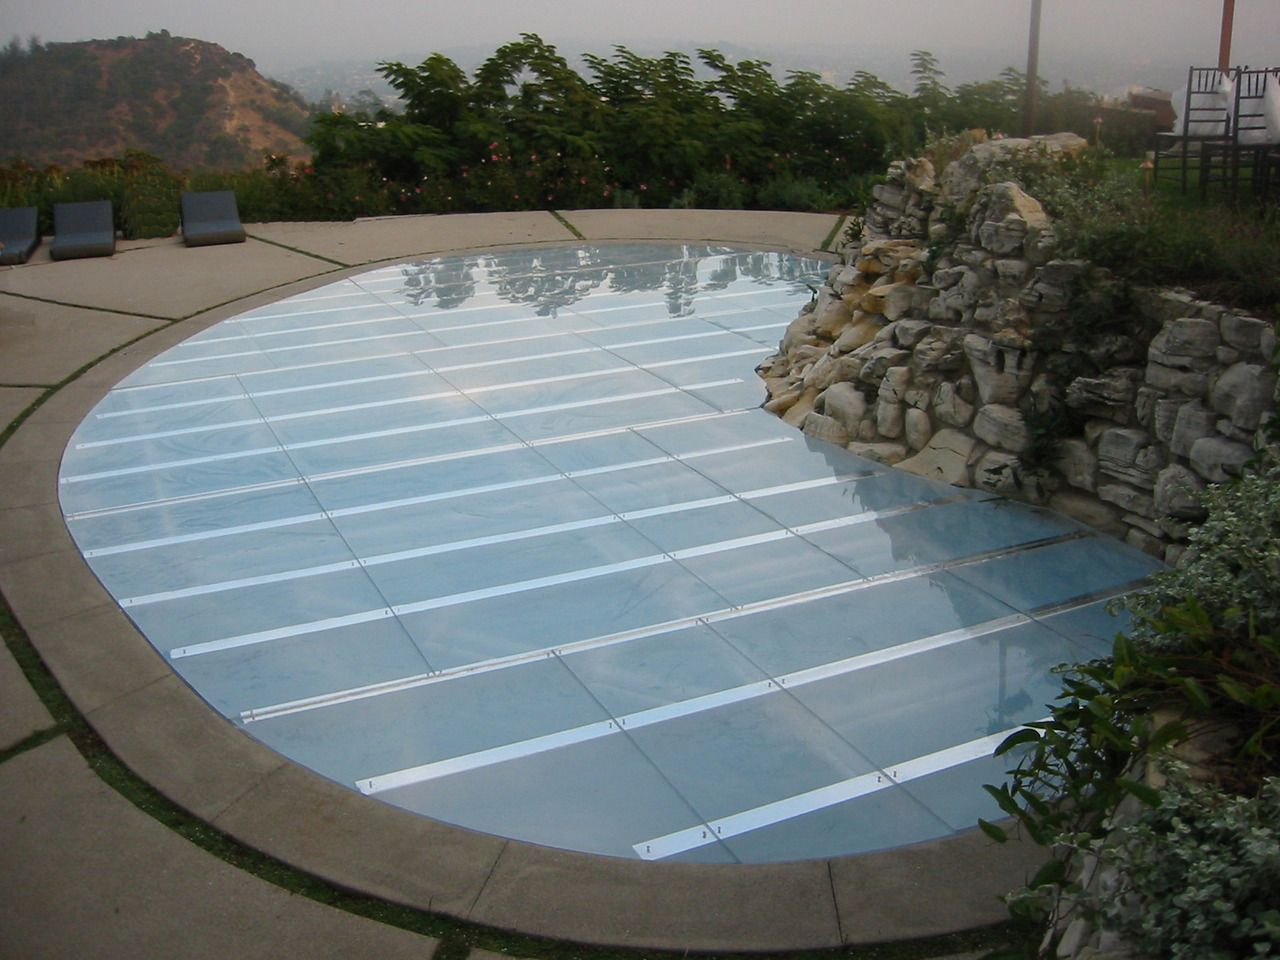 Walk On Water Pool Covers For Backyard Wedding Different